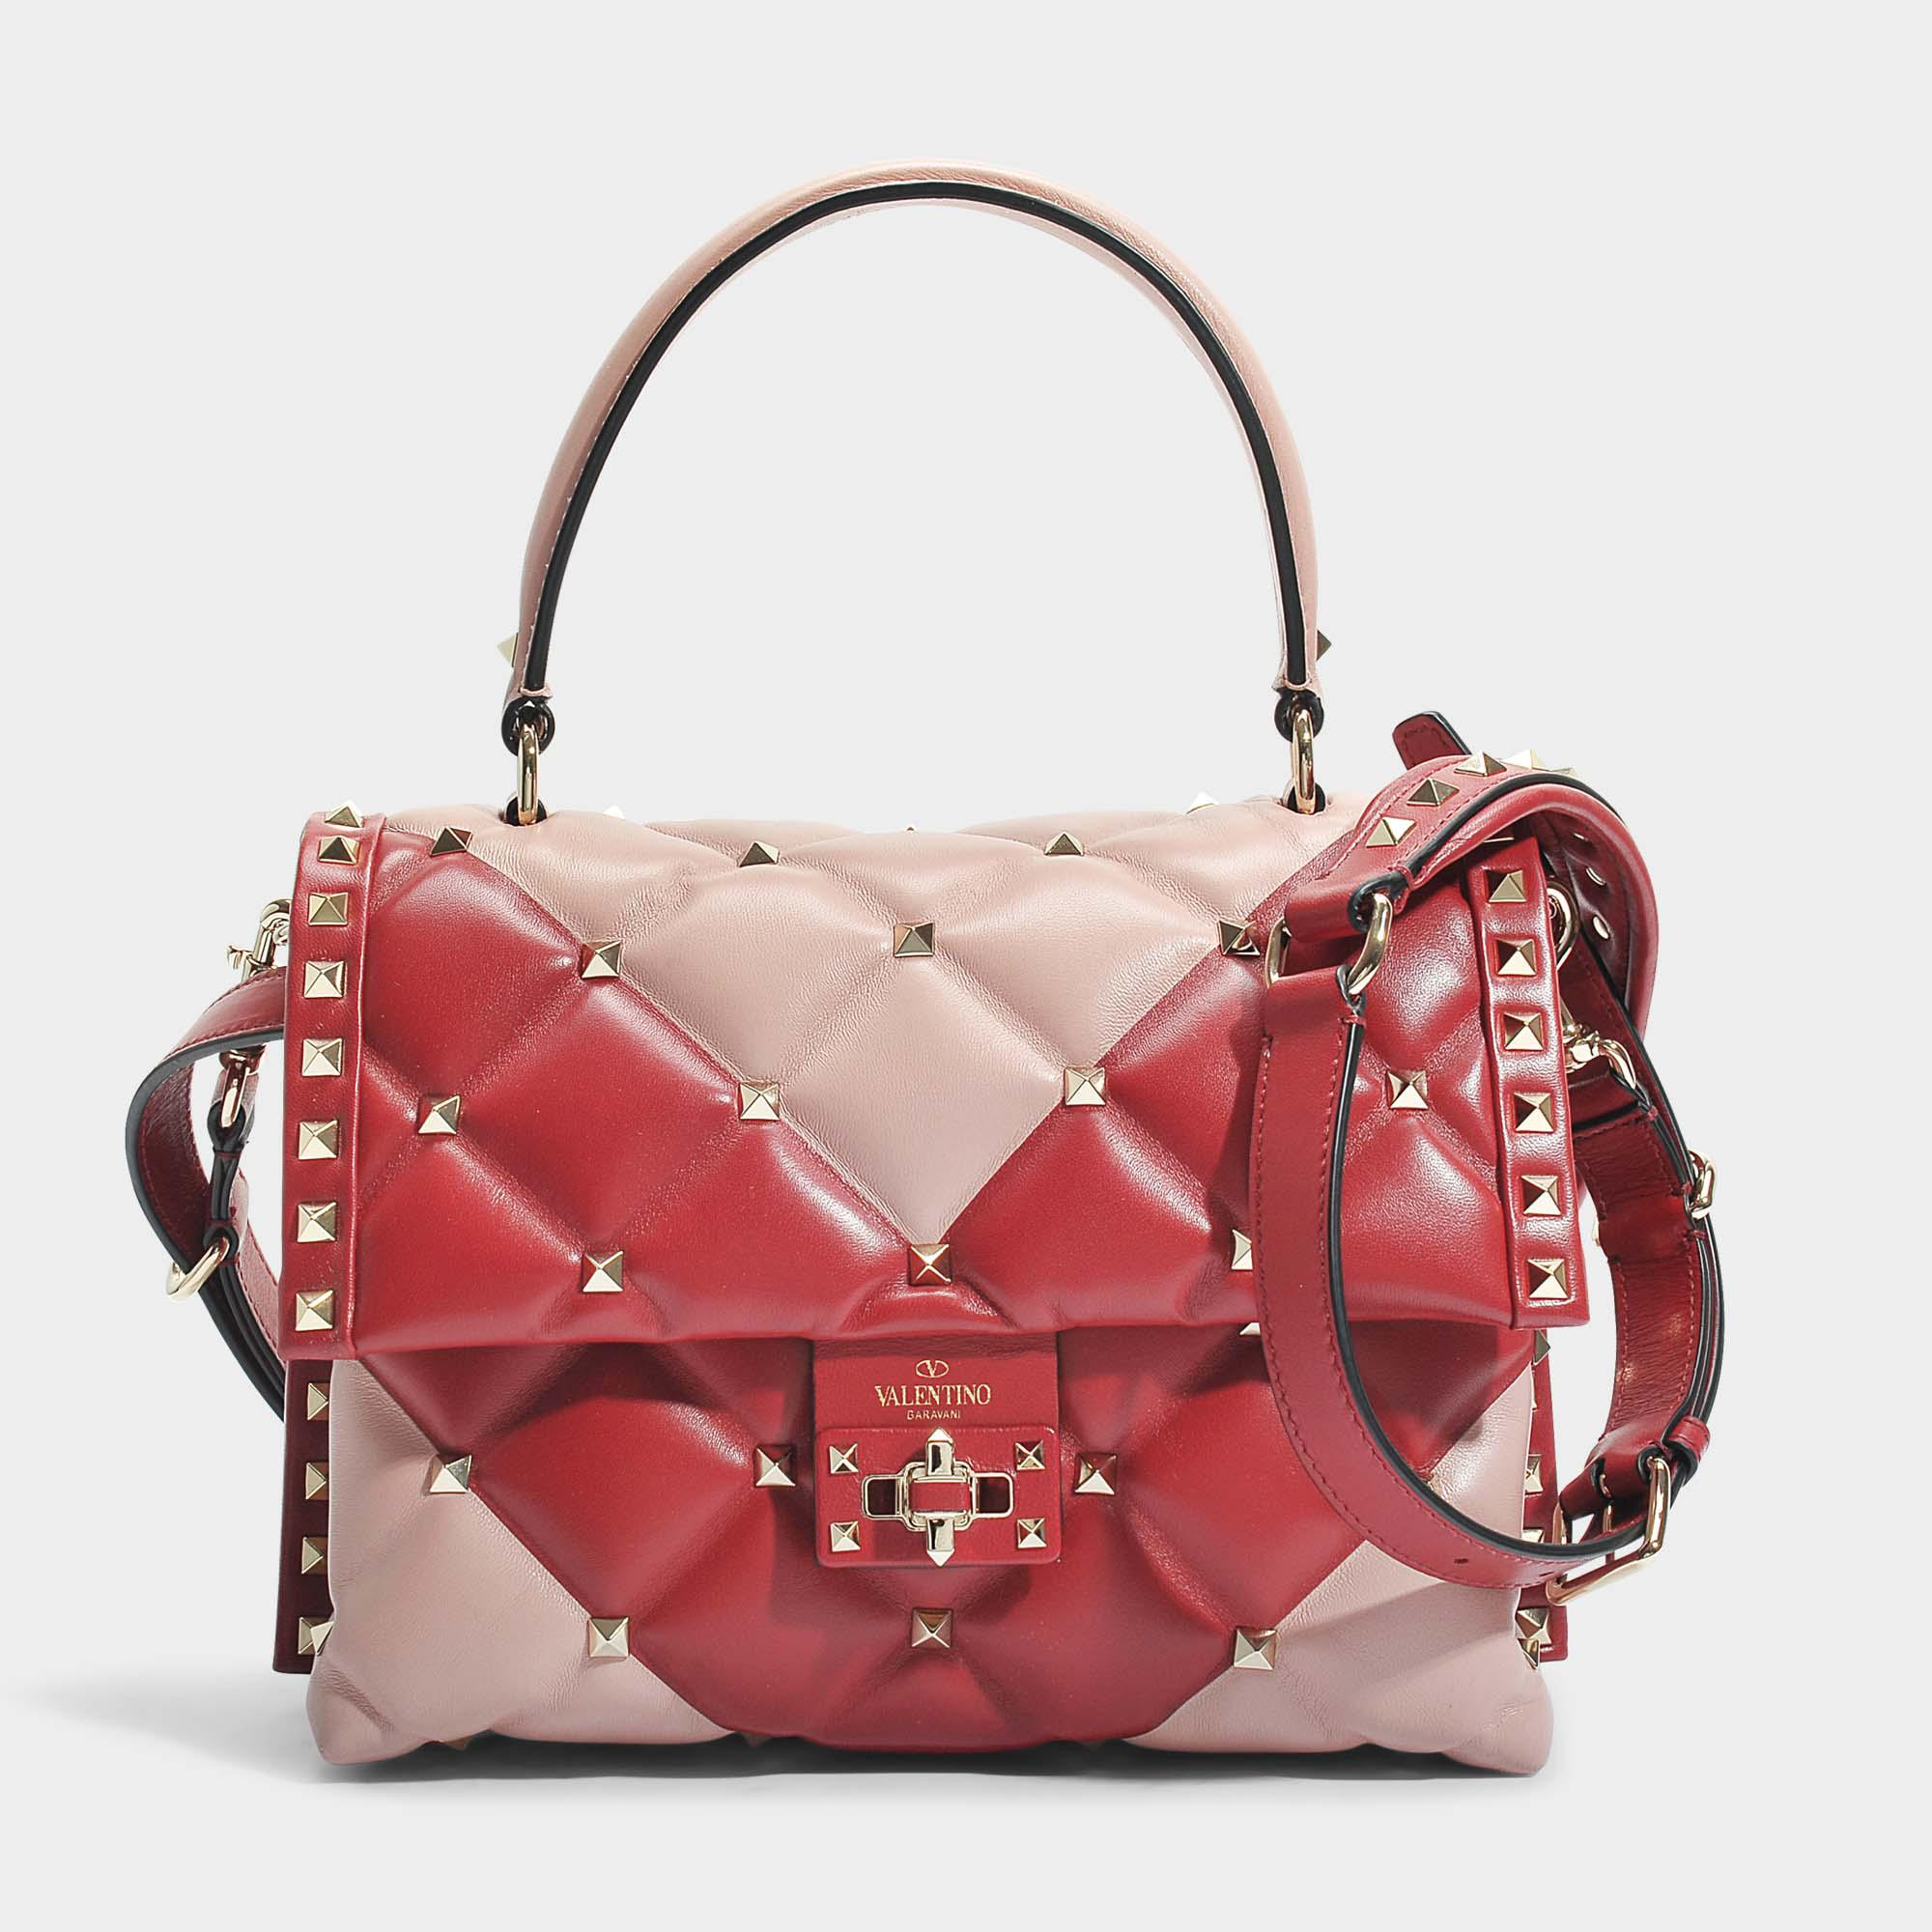 Candy Lock Single Handle Bag in Dusty Rose and Red Two-Tone Calf Valentino xjVjuWjW3K